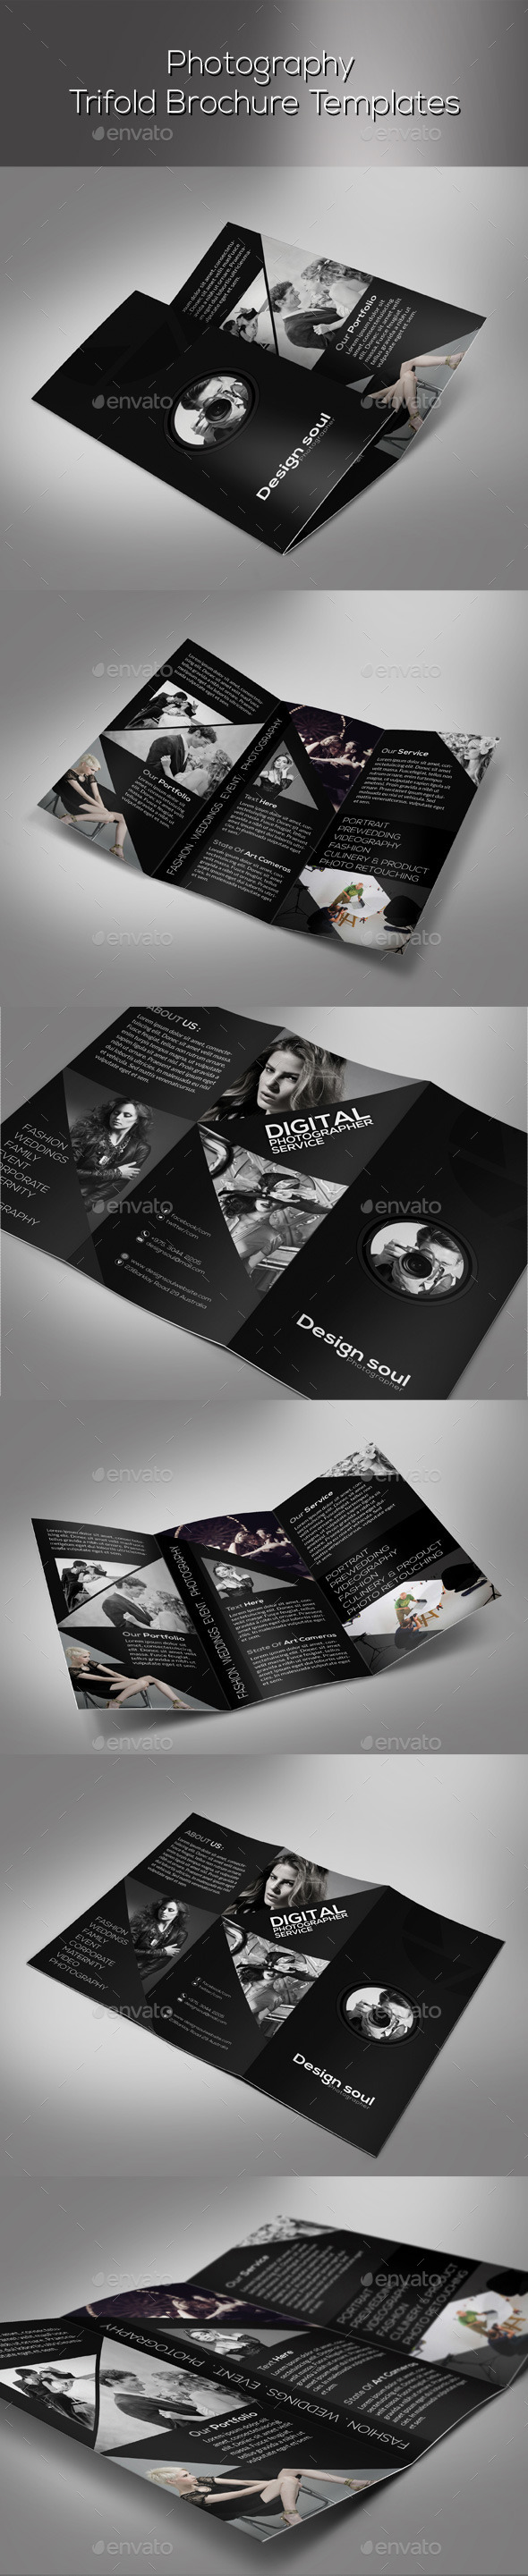 GraphicRiver Photography Trifold Brochure 9443804